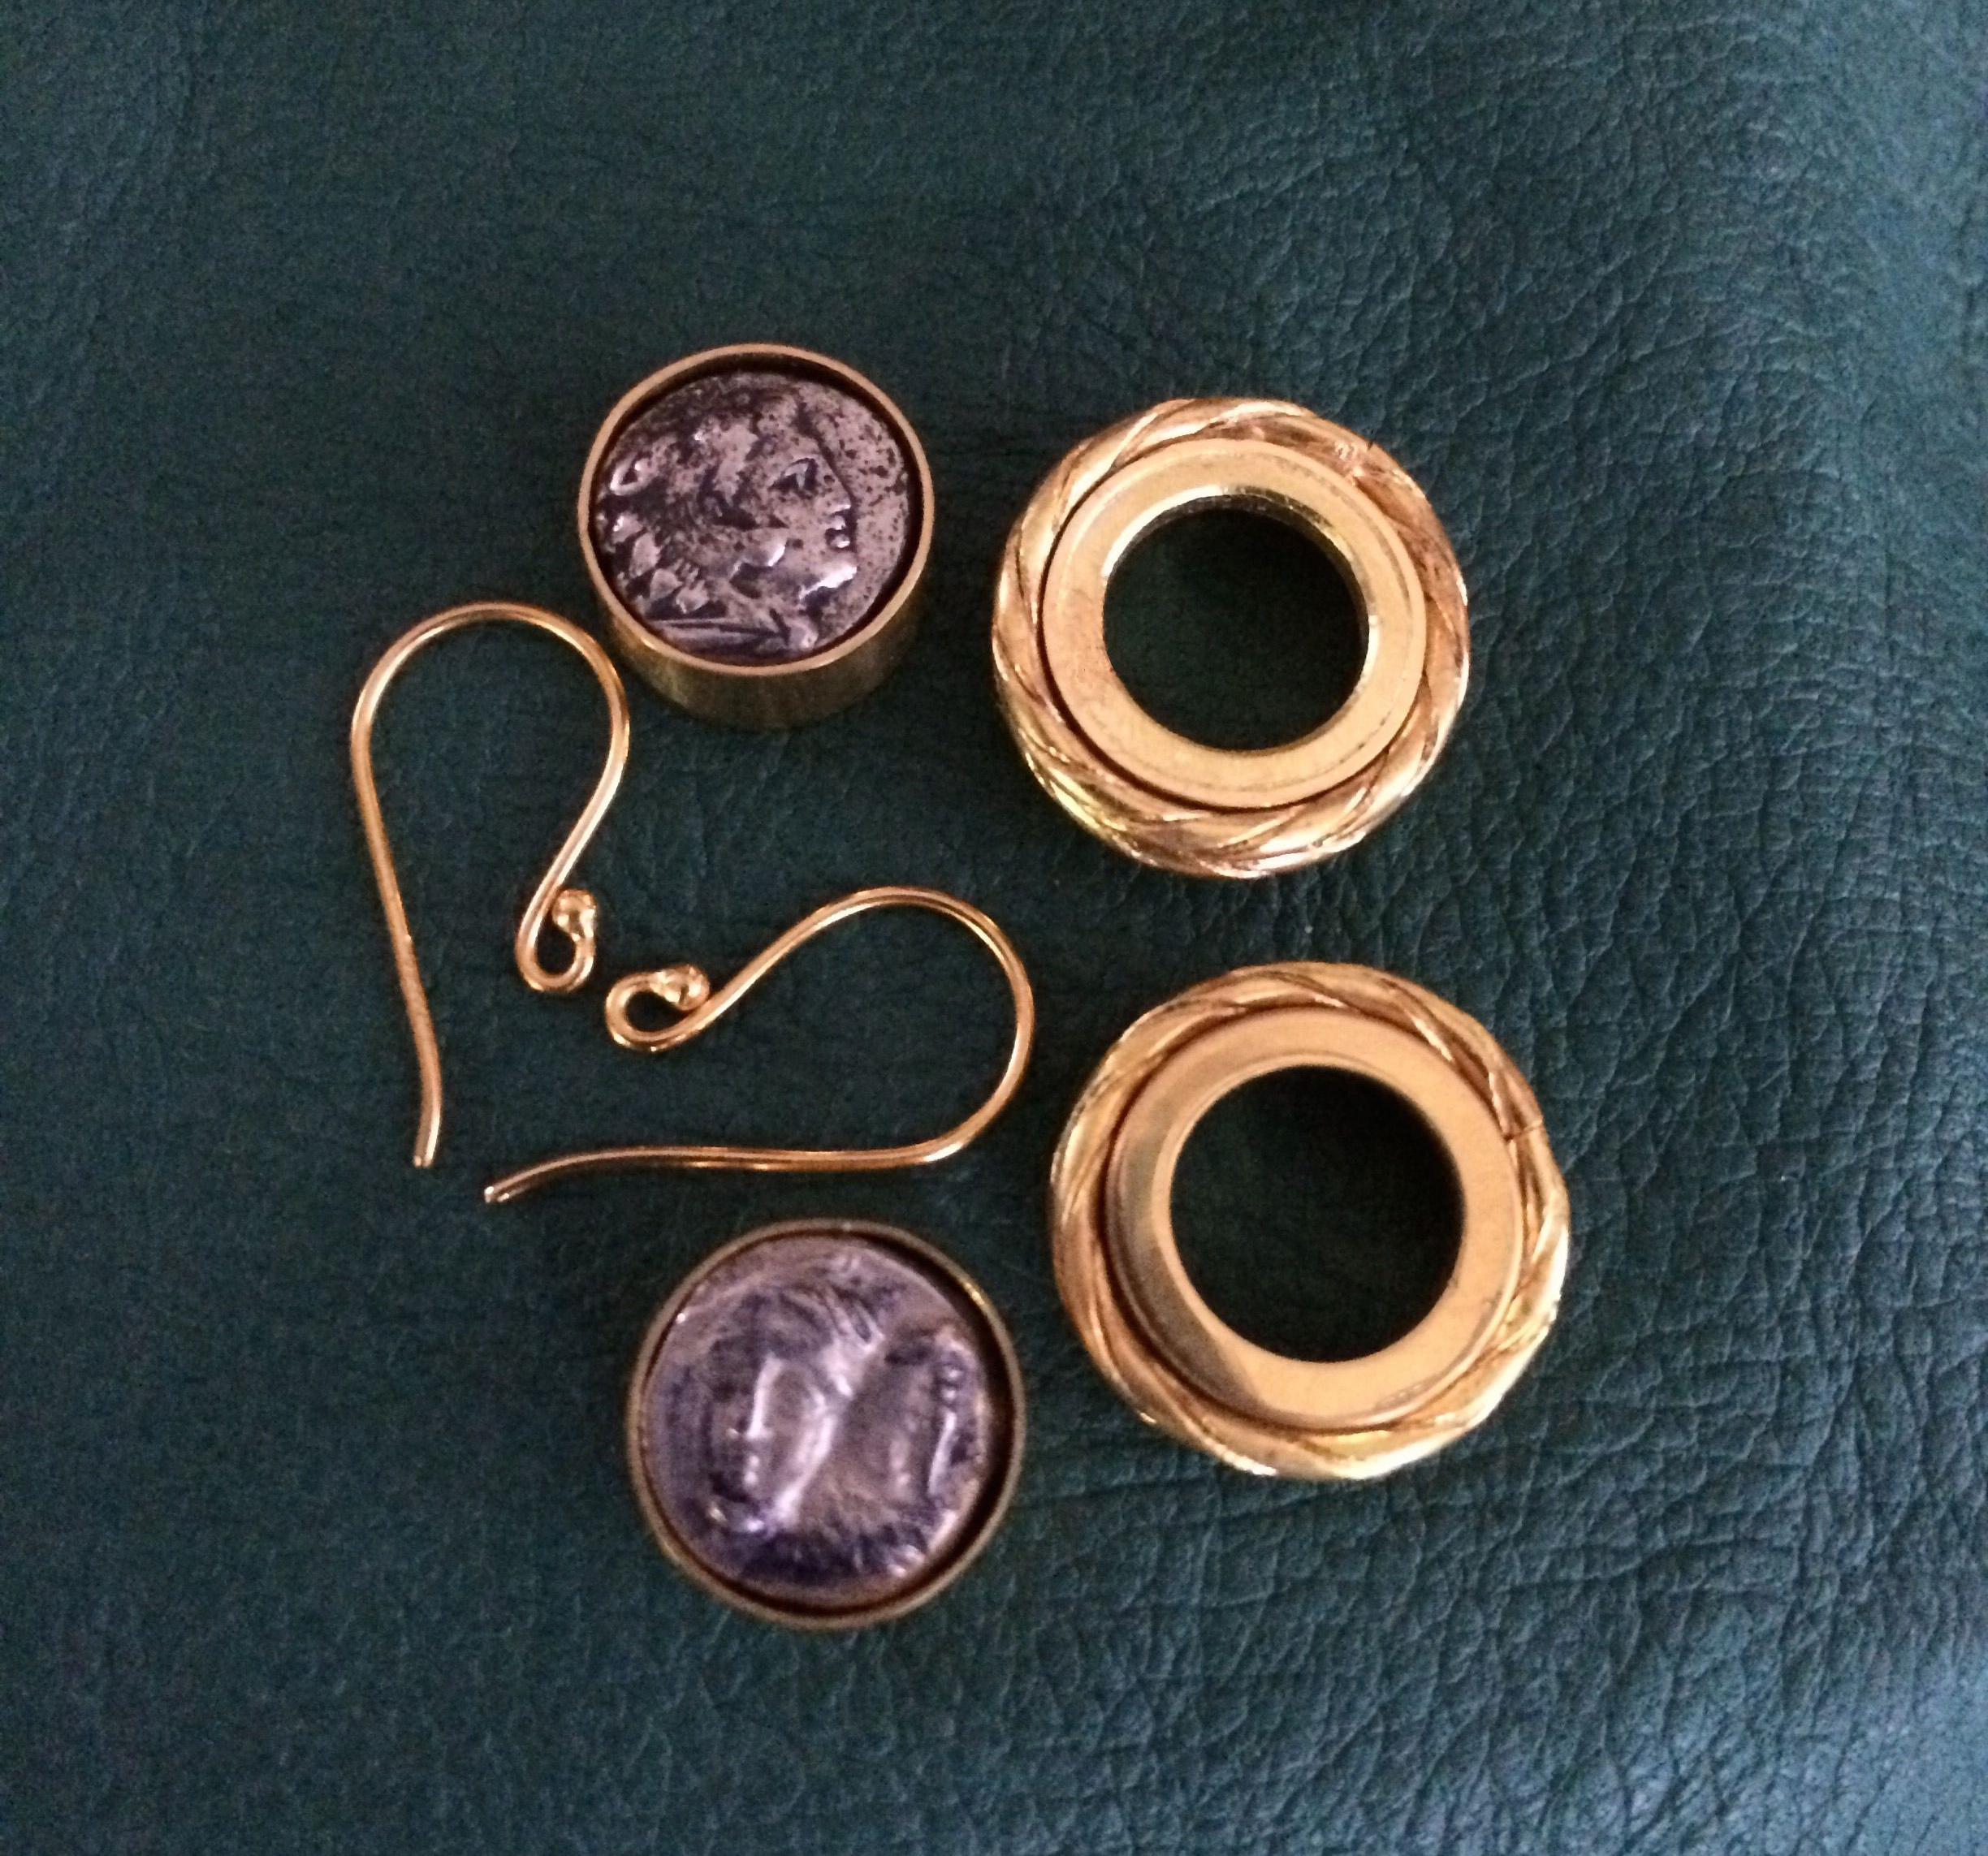 Ancient coin earrings in progress.